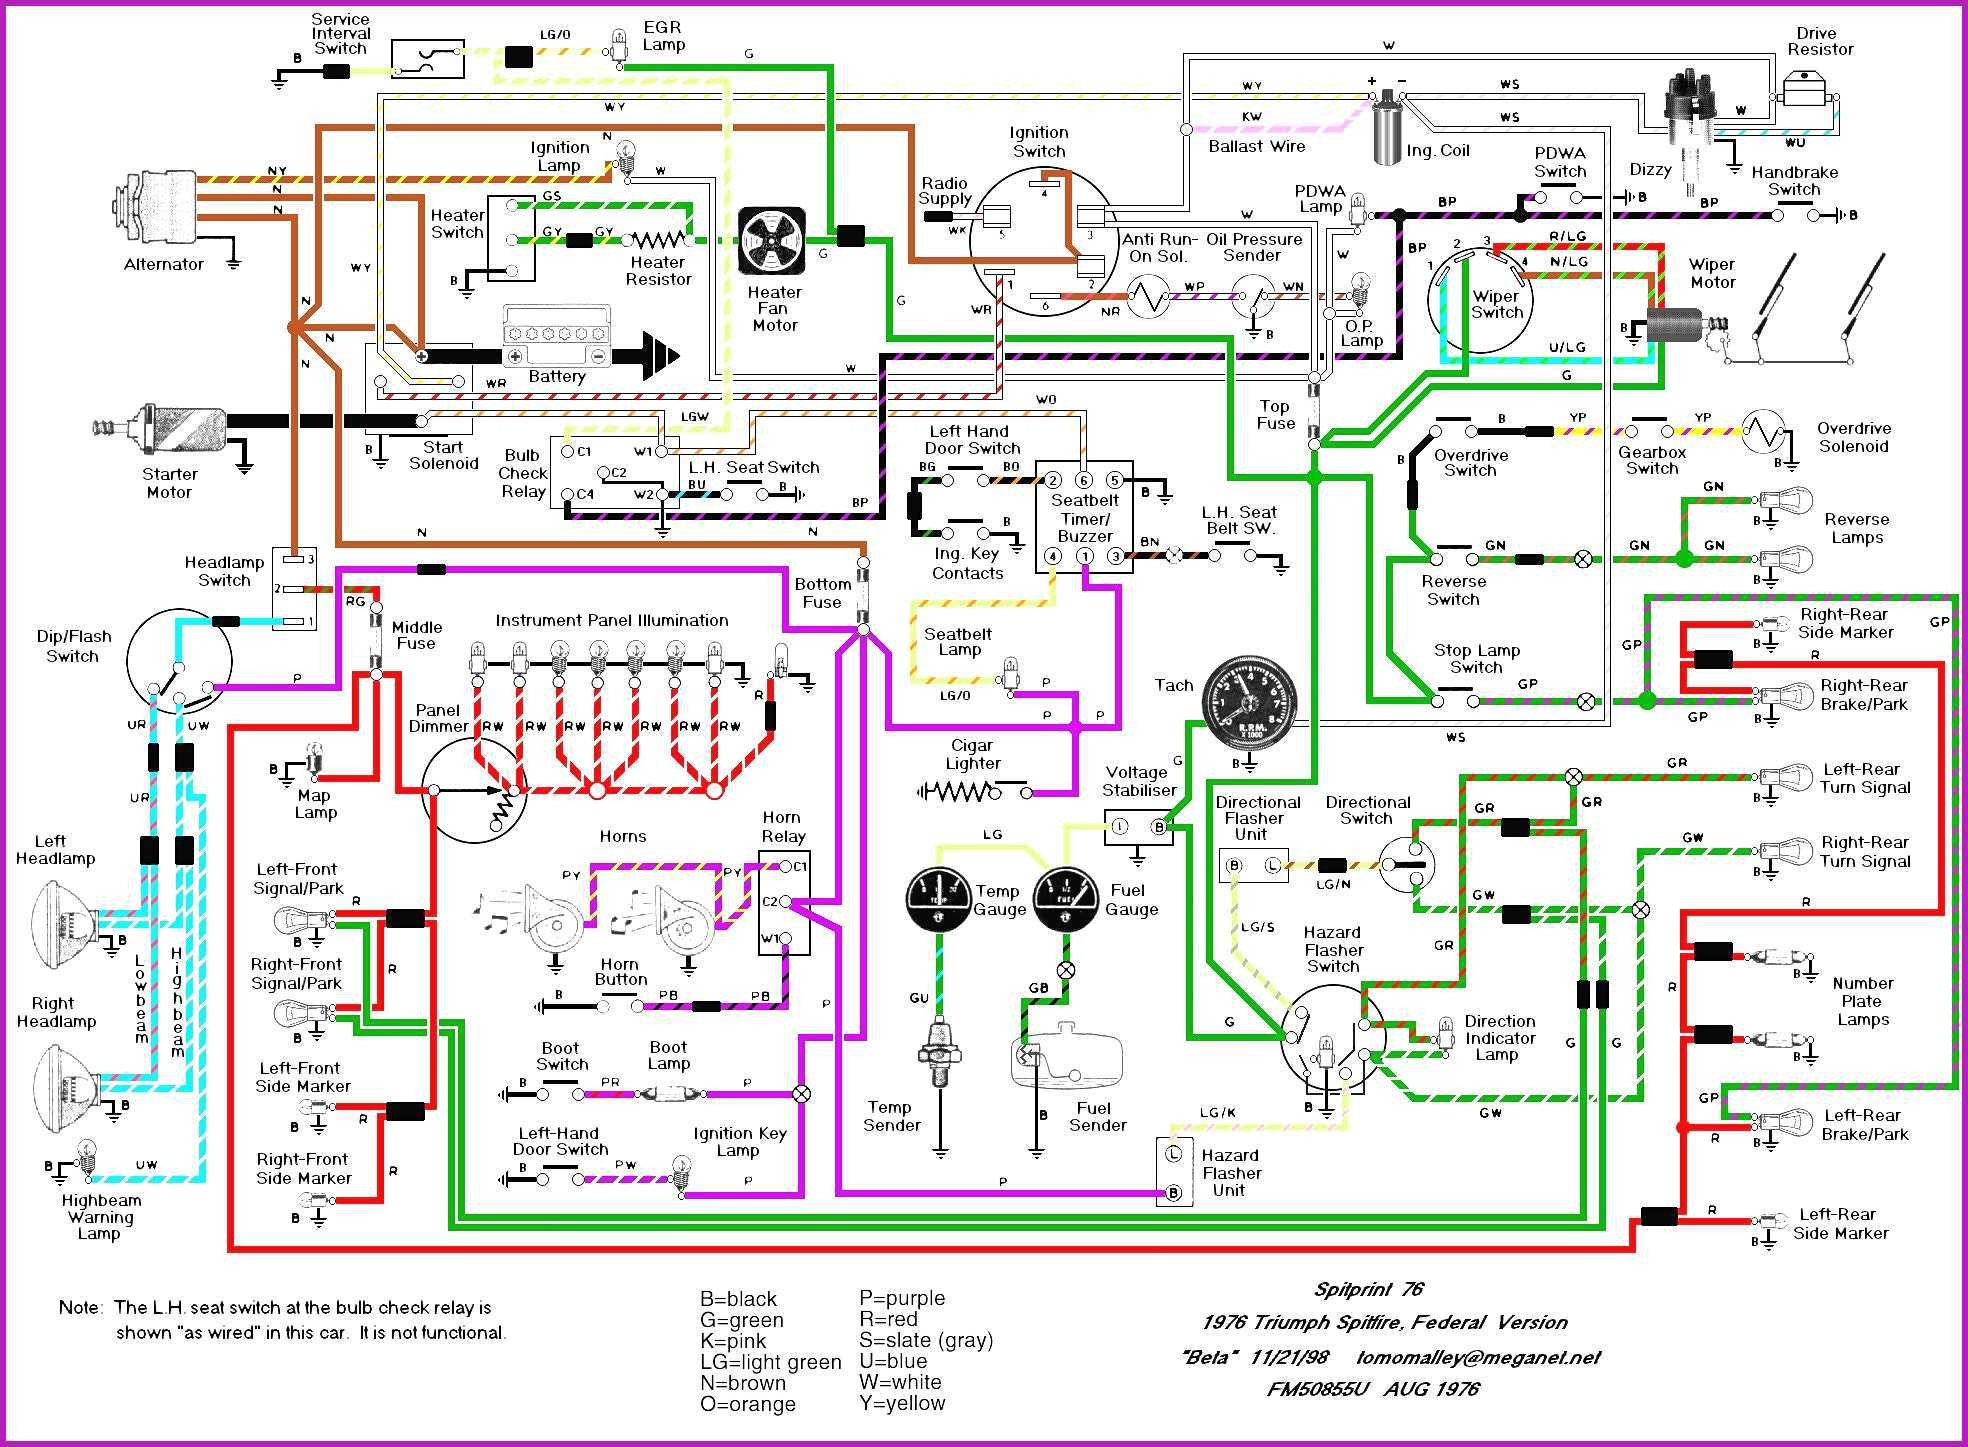 House Electrical Plan Software Best Of Wiring Diagram Free Download - Electrical Wiring Diagram Software Free Download